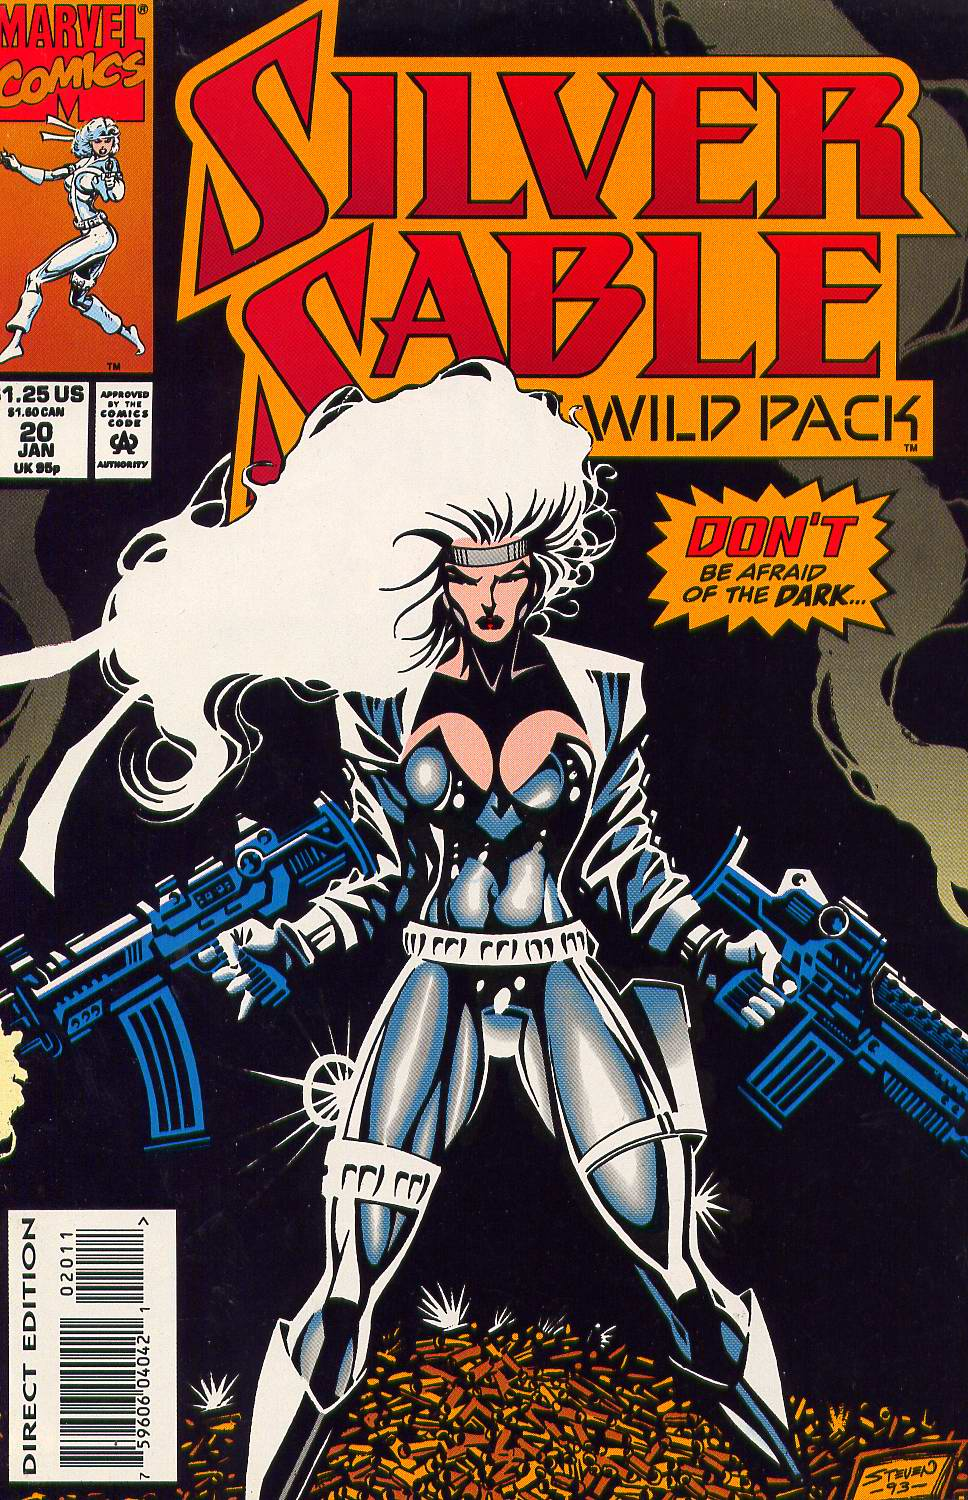 Read online Silver Sable and the Wild Pack comic -  Issue #20 - 1